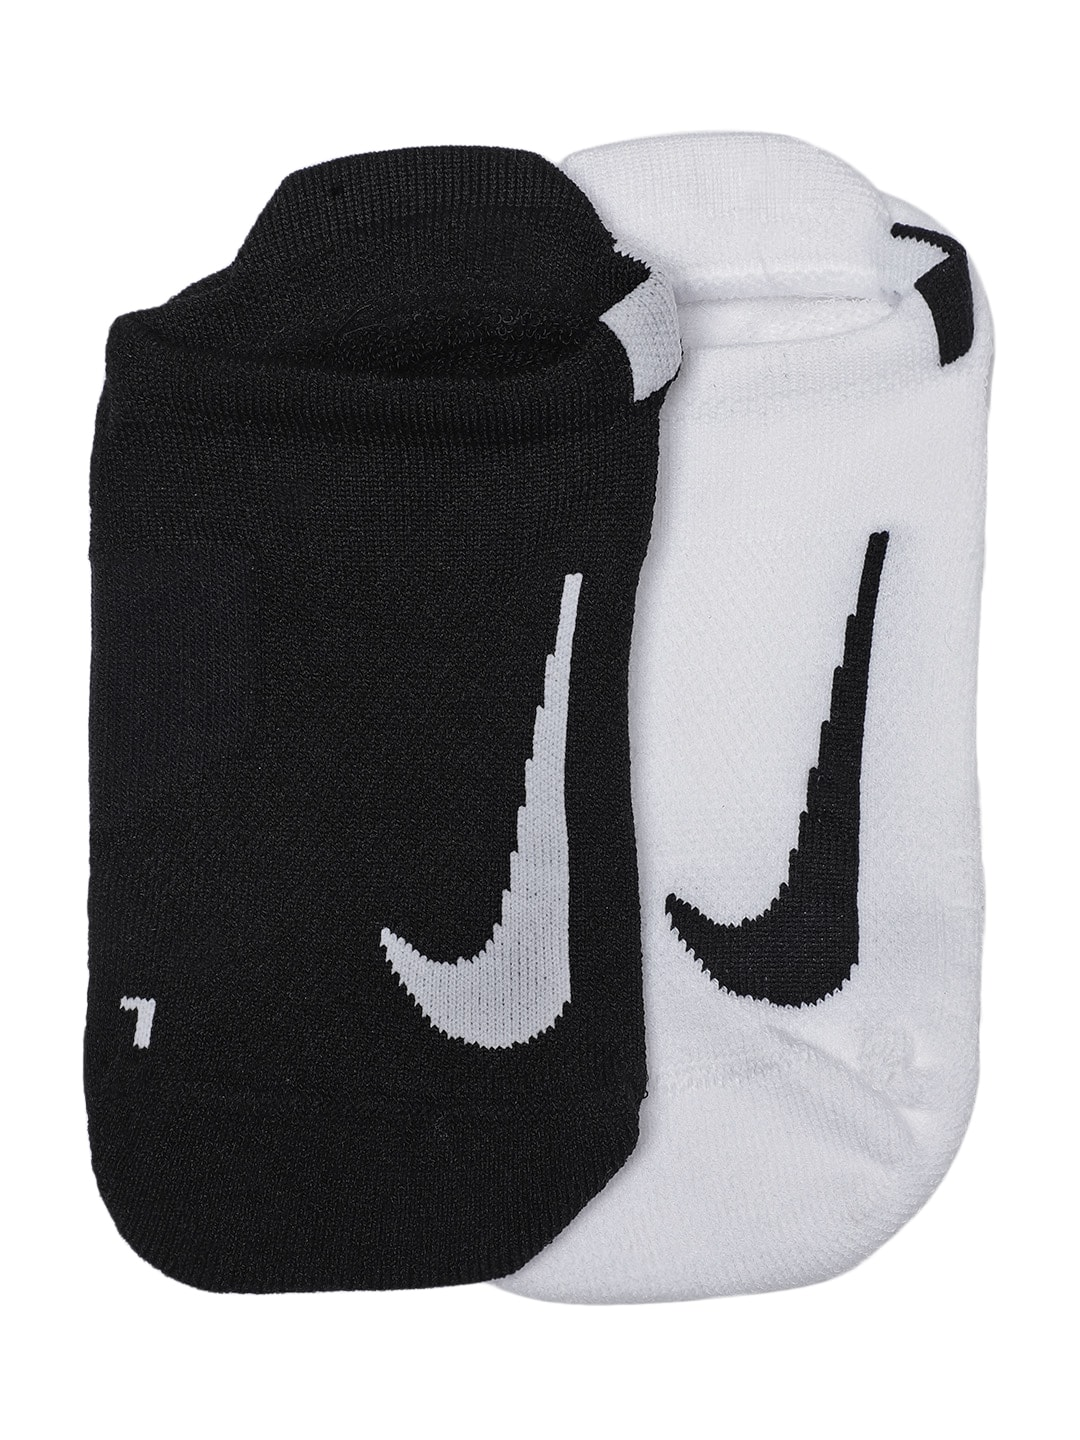 12c267cc8d4 Nike Supra Gucci Socks - Buy Nike Supra Gucci Socks online in India